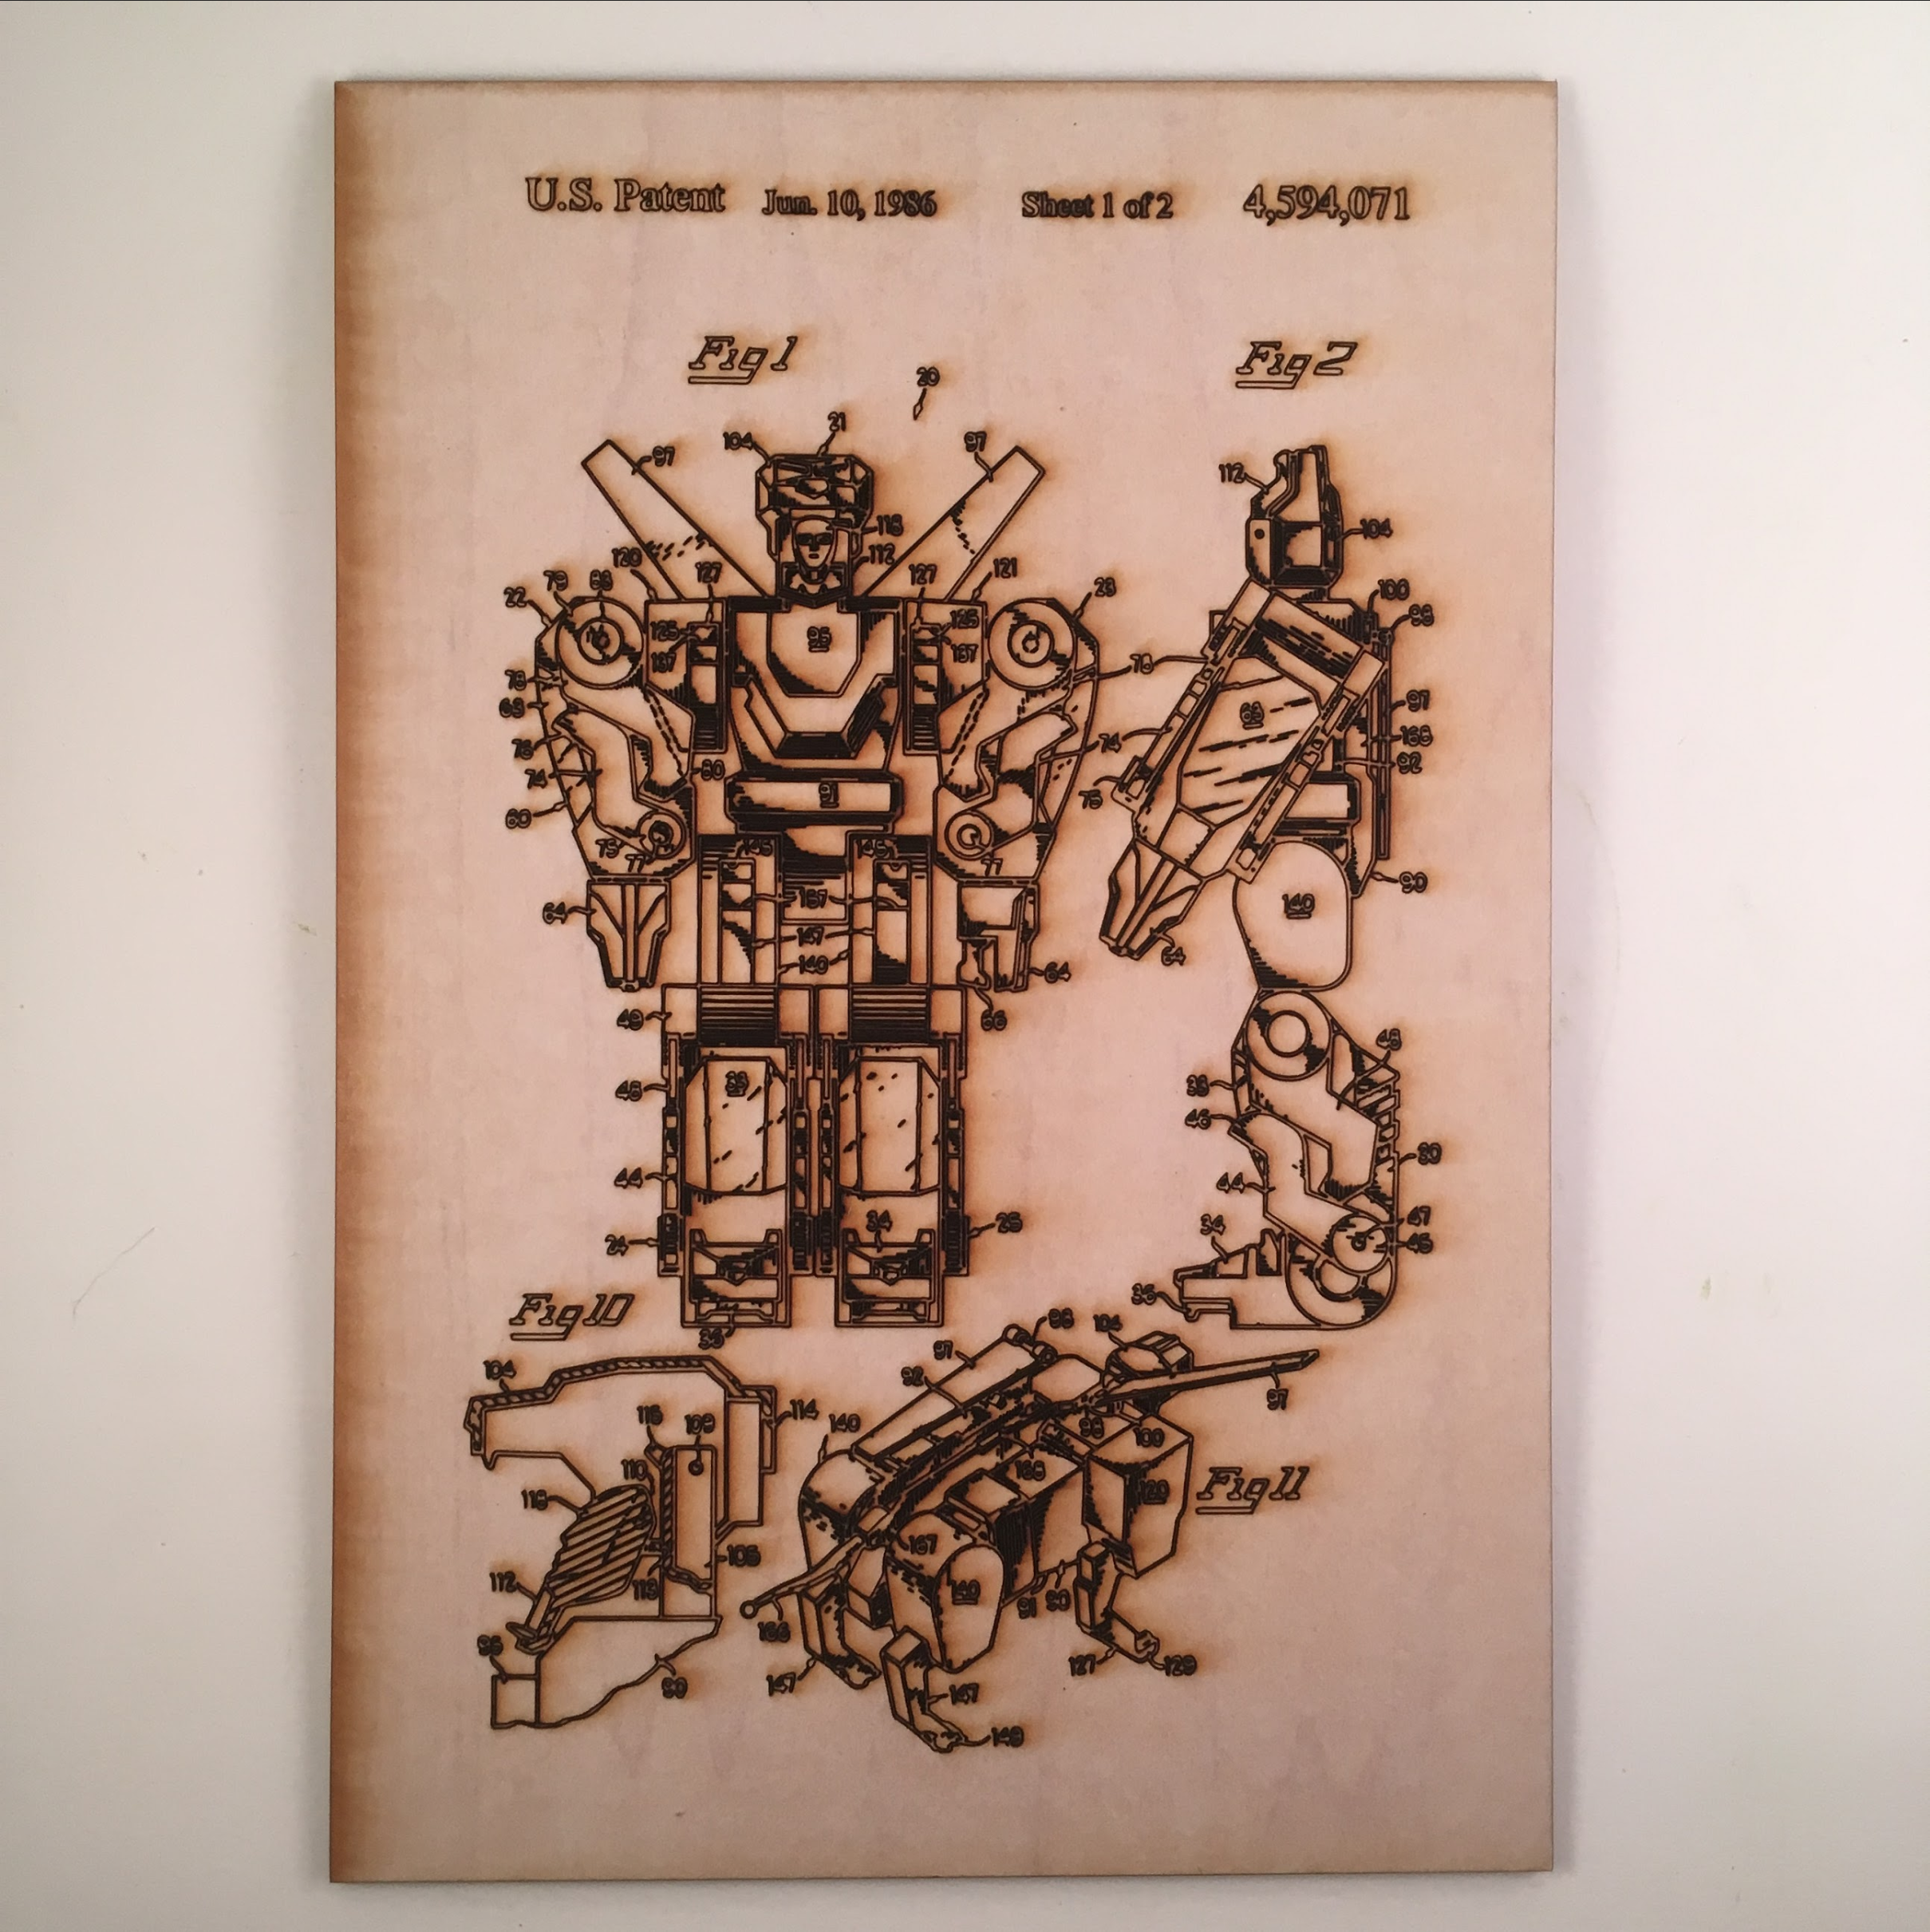 The original Voltron Patent laser cut into wood using our Glowforge.